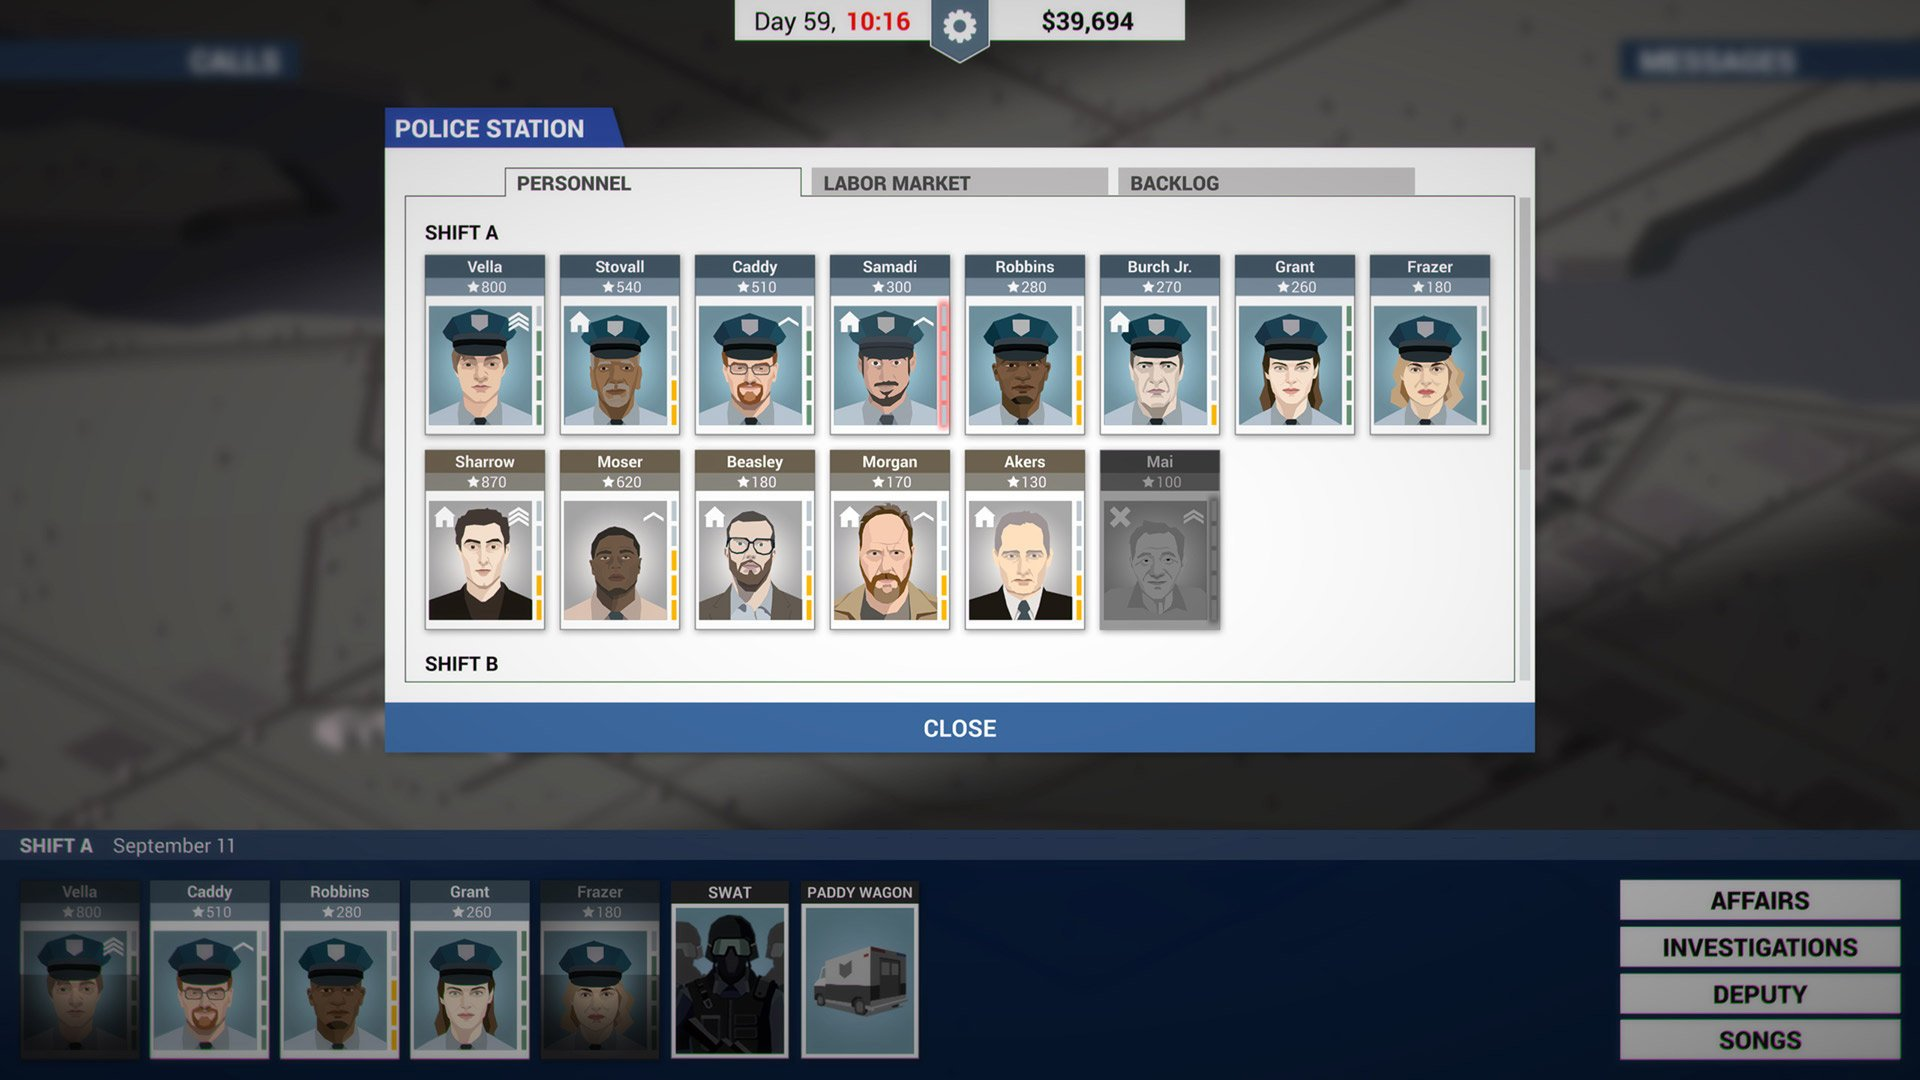 This Is the Police (PS4 / PlayStation 4) Game Profile ...